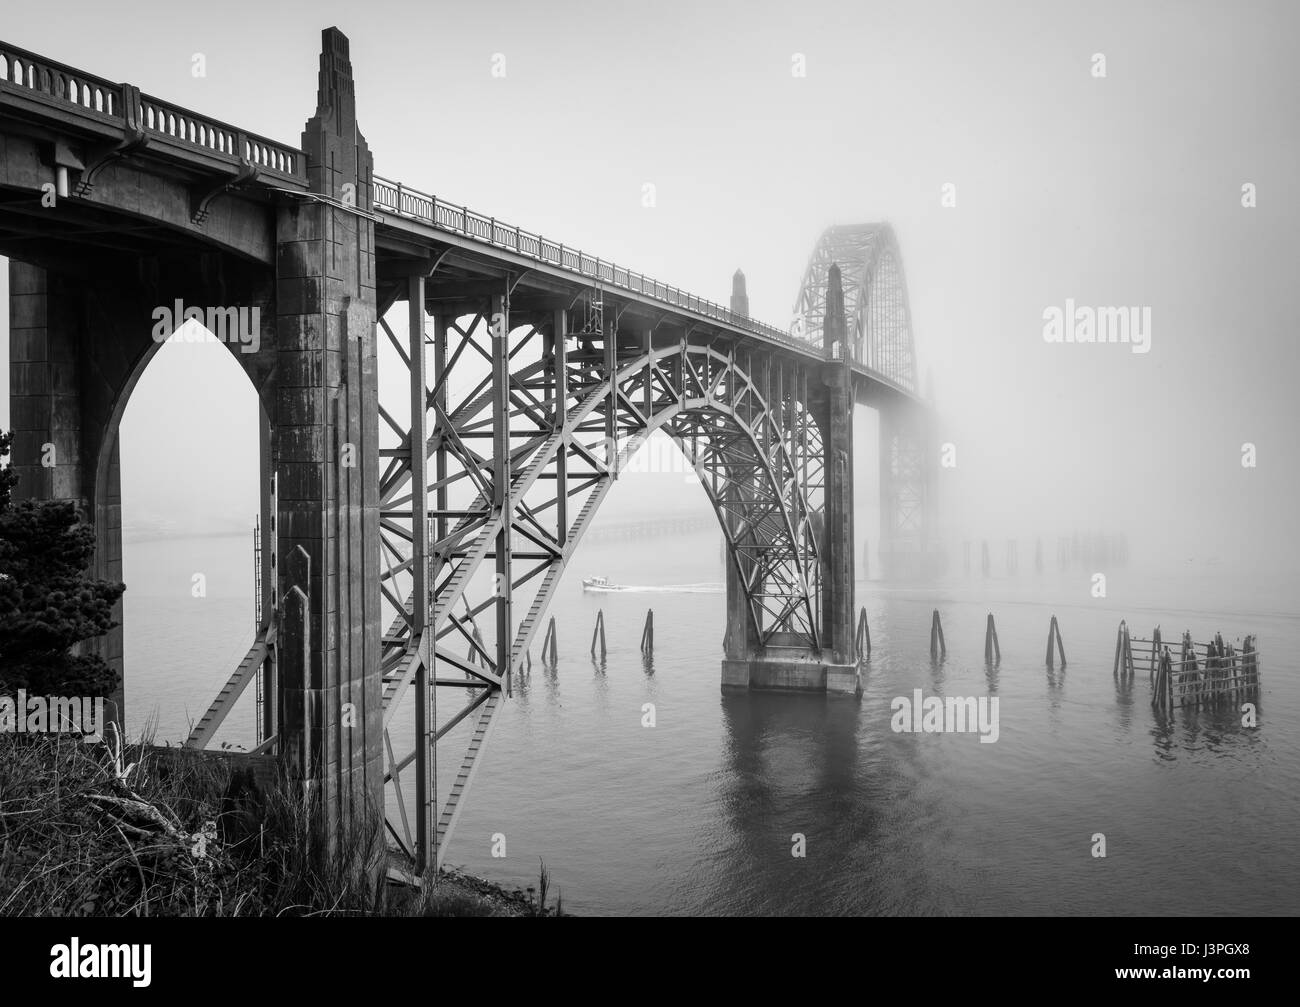 The Yaquina Bay Bridge is an arch bridge that spans Yaquina Bay south of Newport, Oregon. It is one of the most - Stock Image